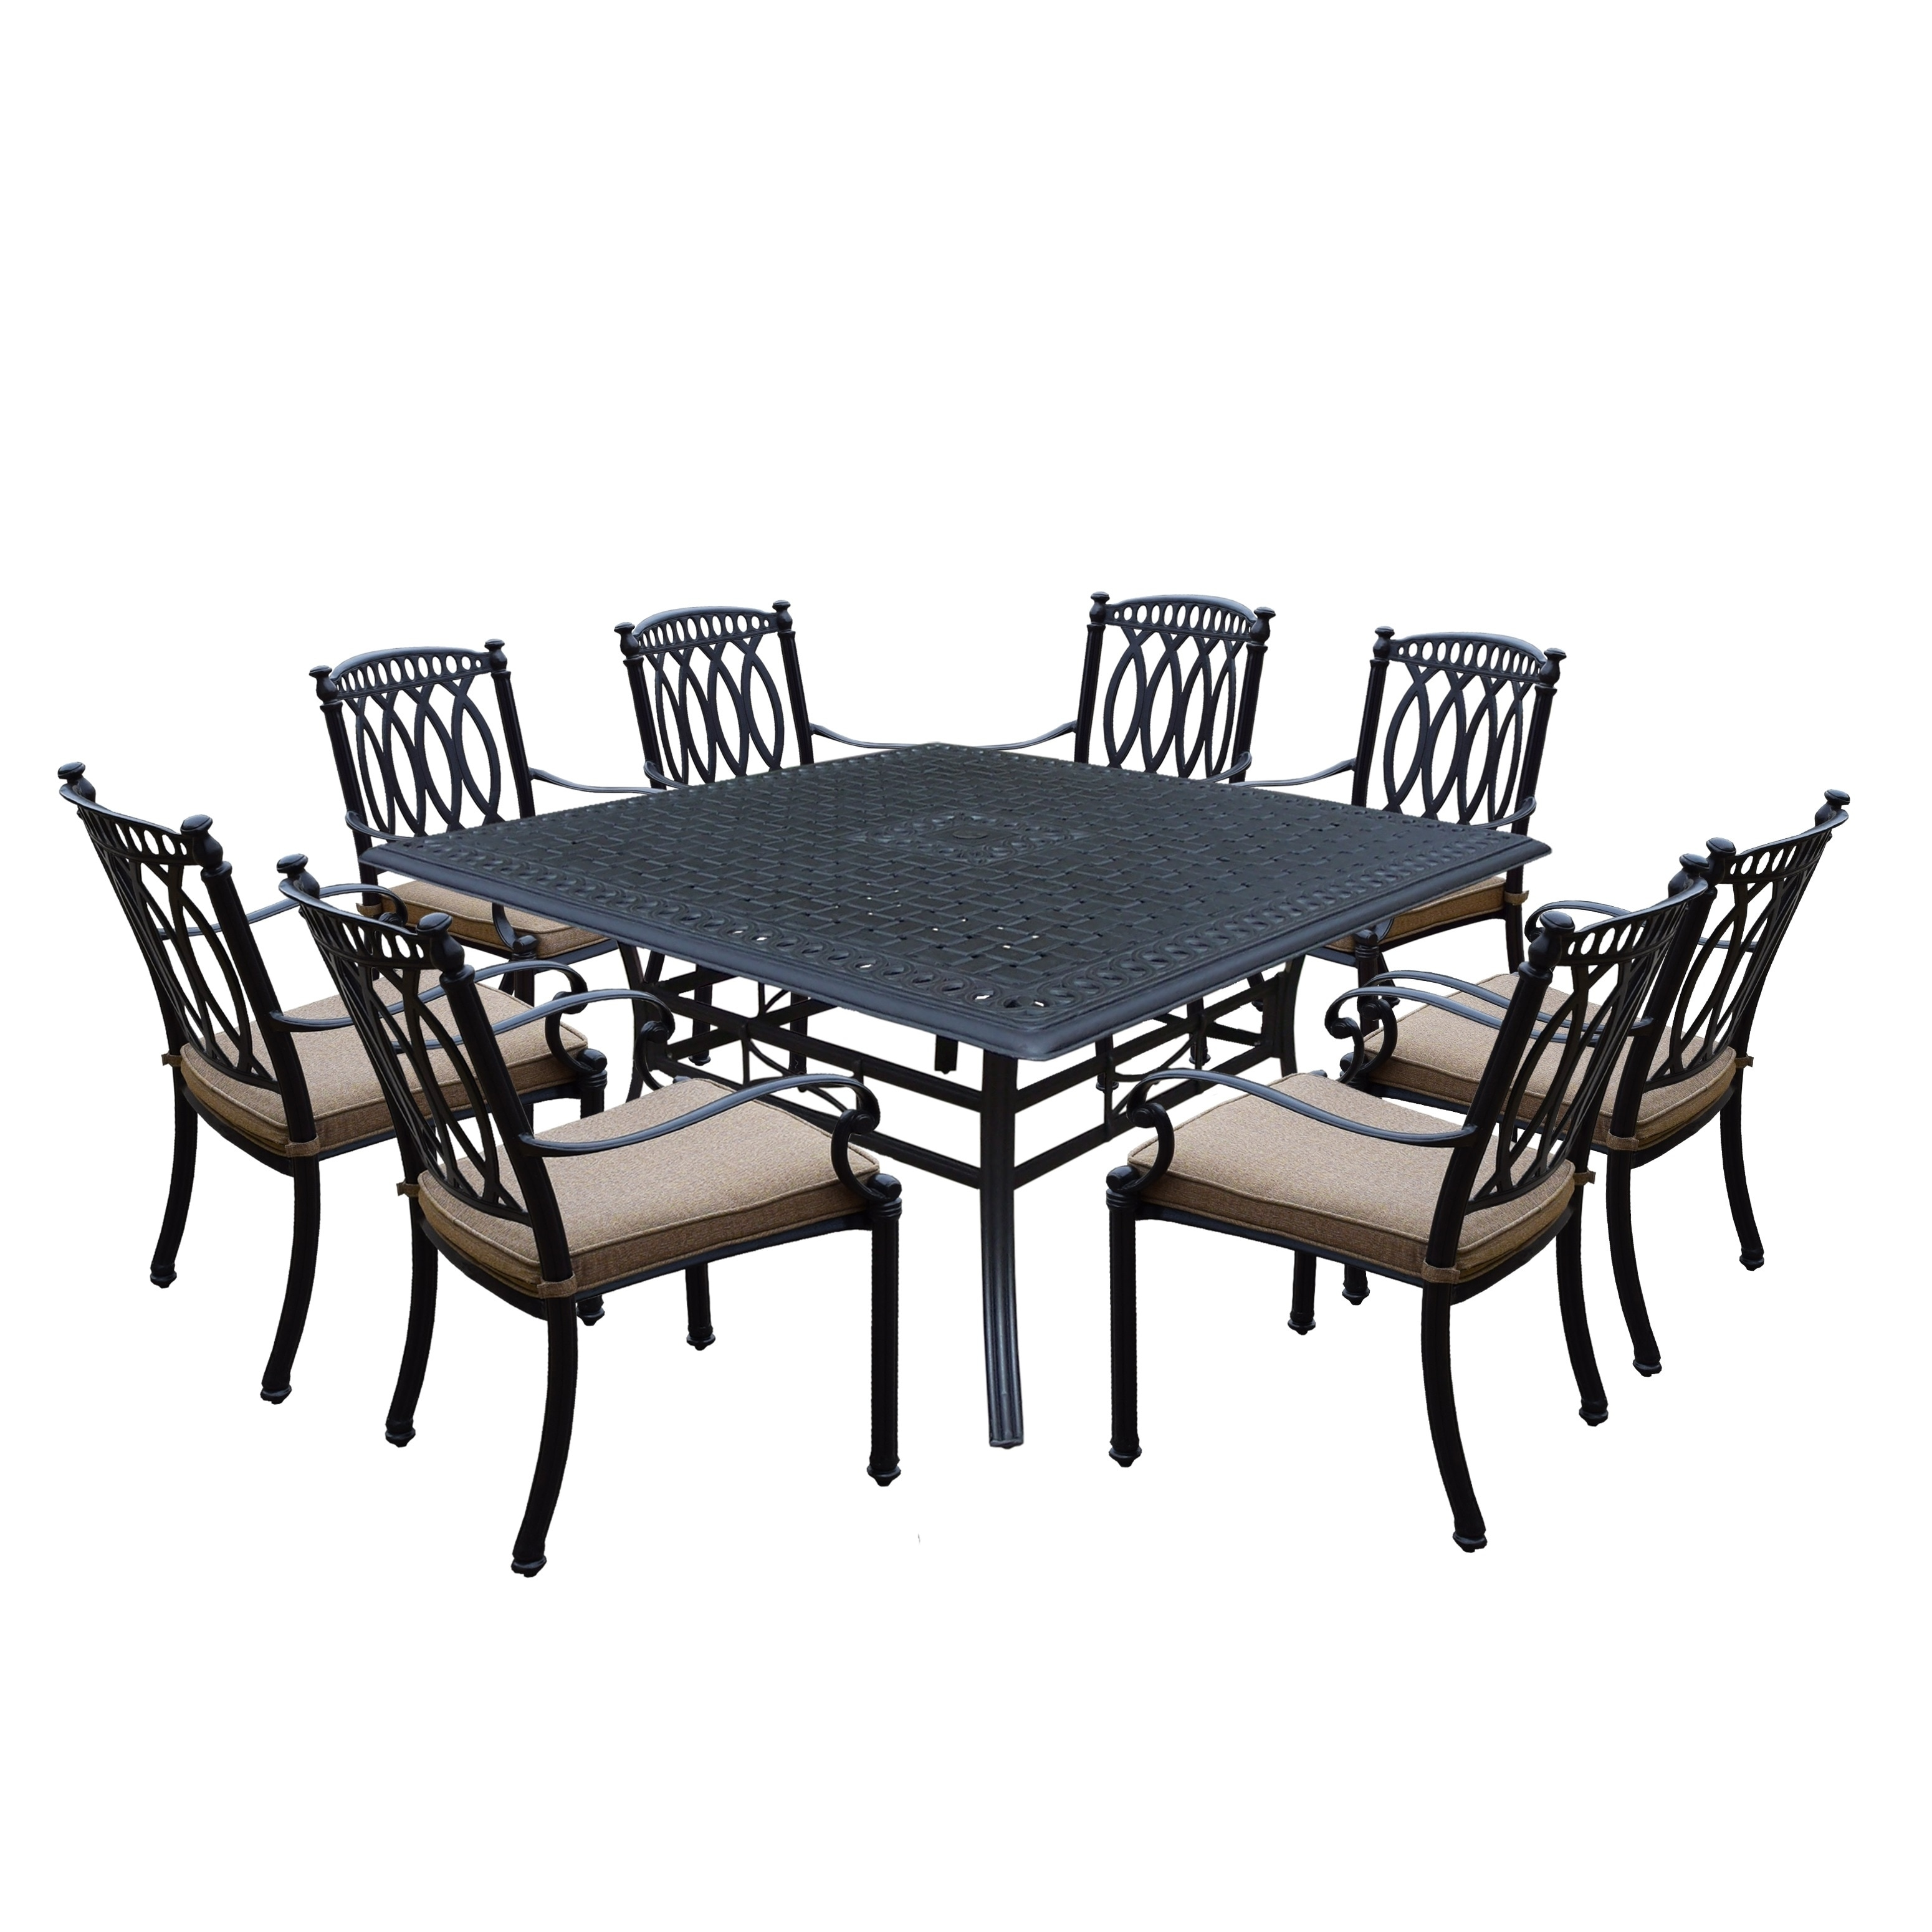 Milan Cast Aluminum 9 Piece Dining Set With Square Table And 8 Completely Welded Stackable Cushioned Chairs